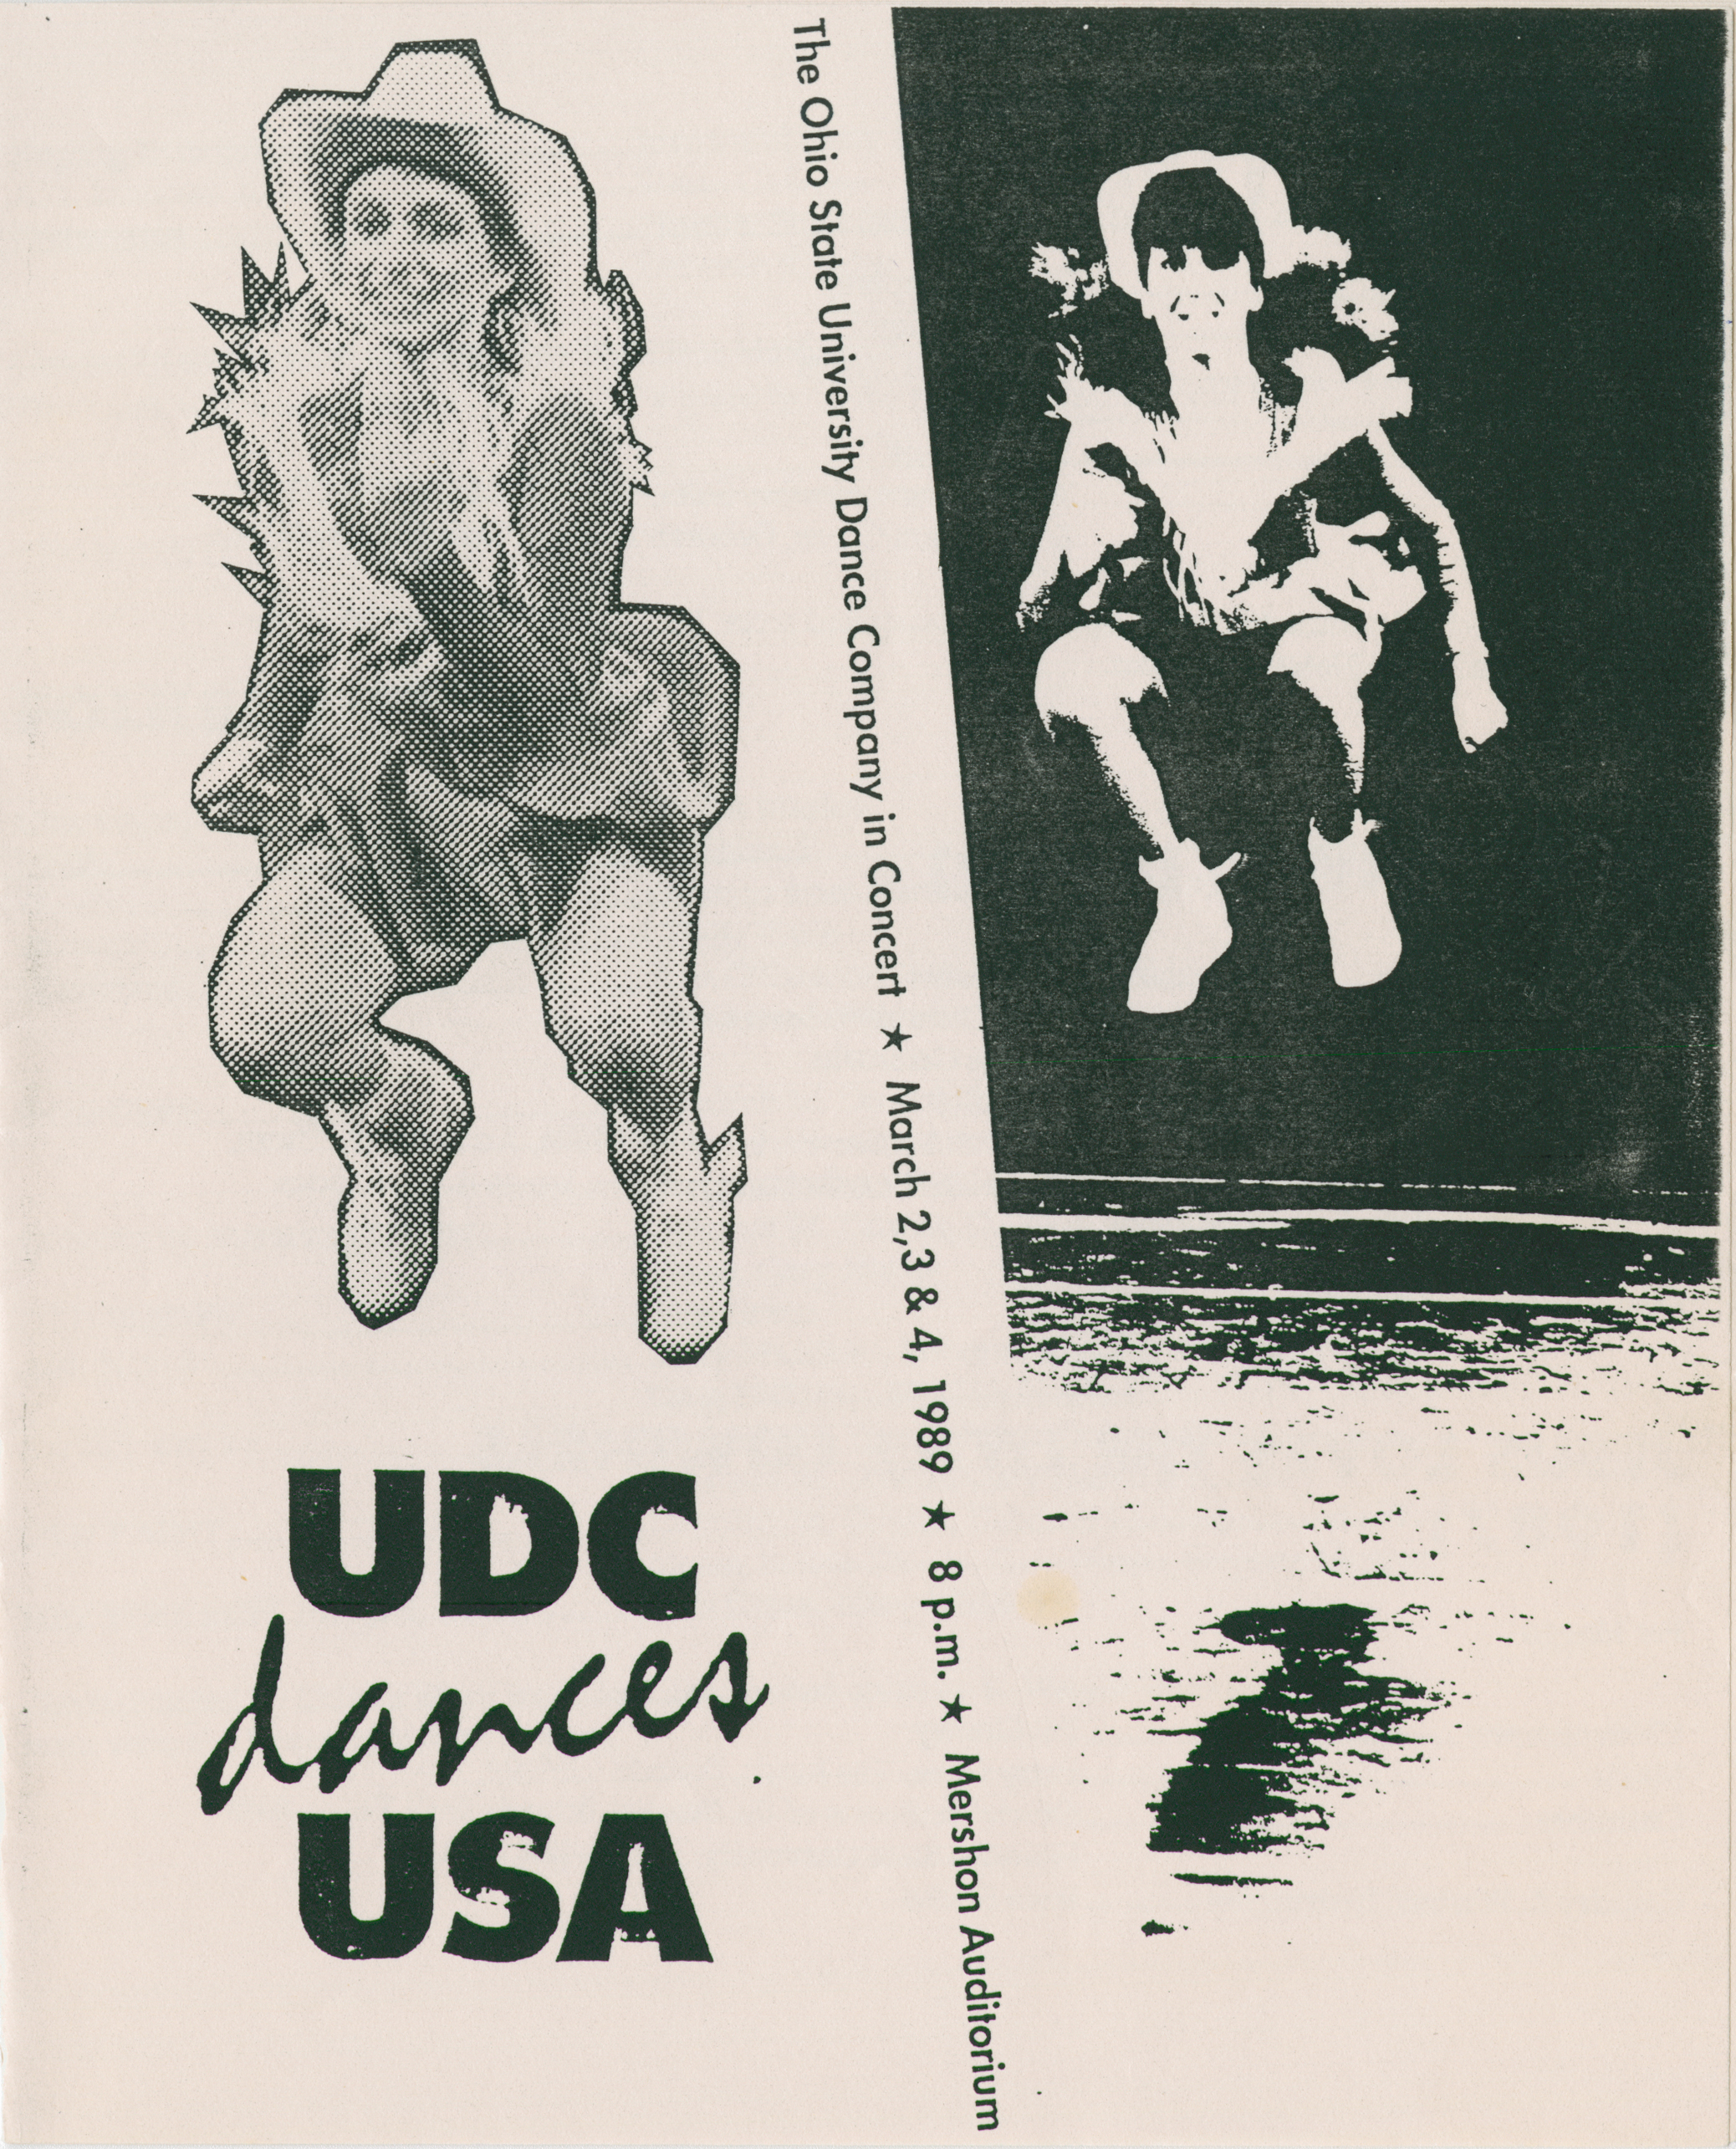 UDC_1989_DancePrograms-021-001.jpg